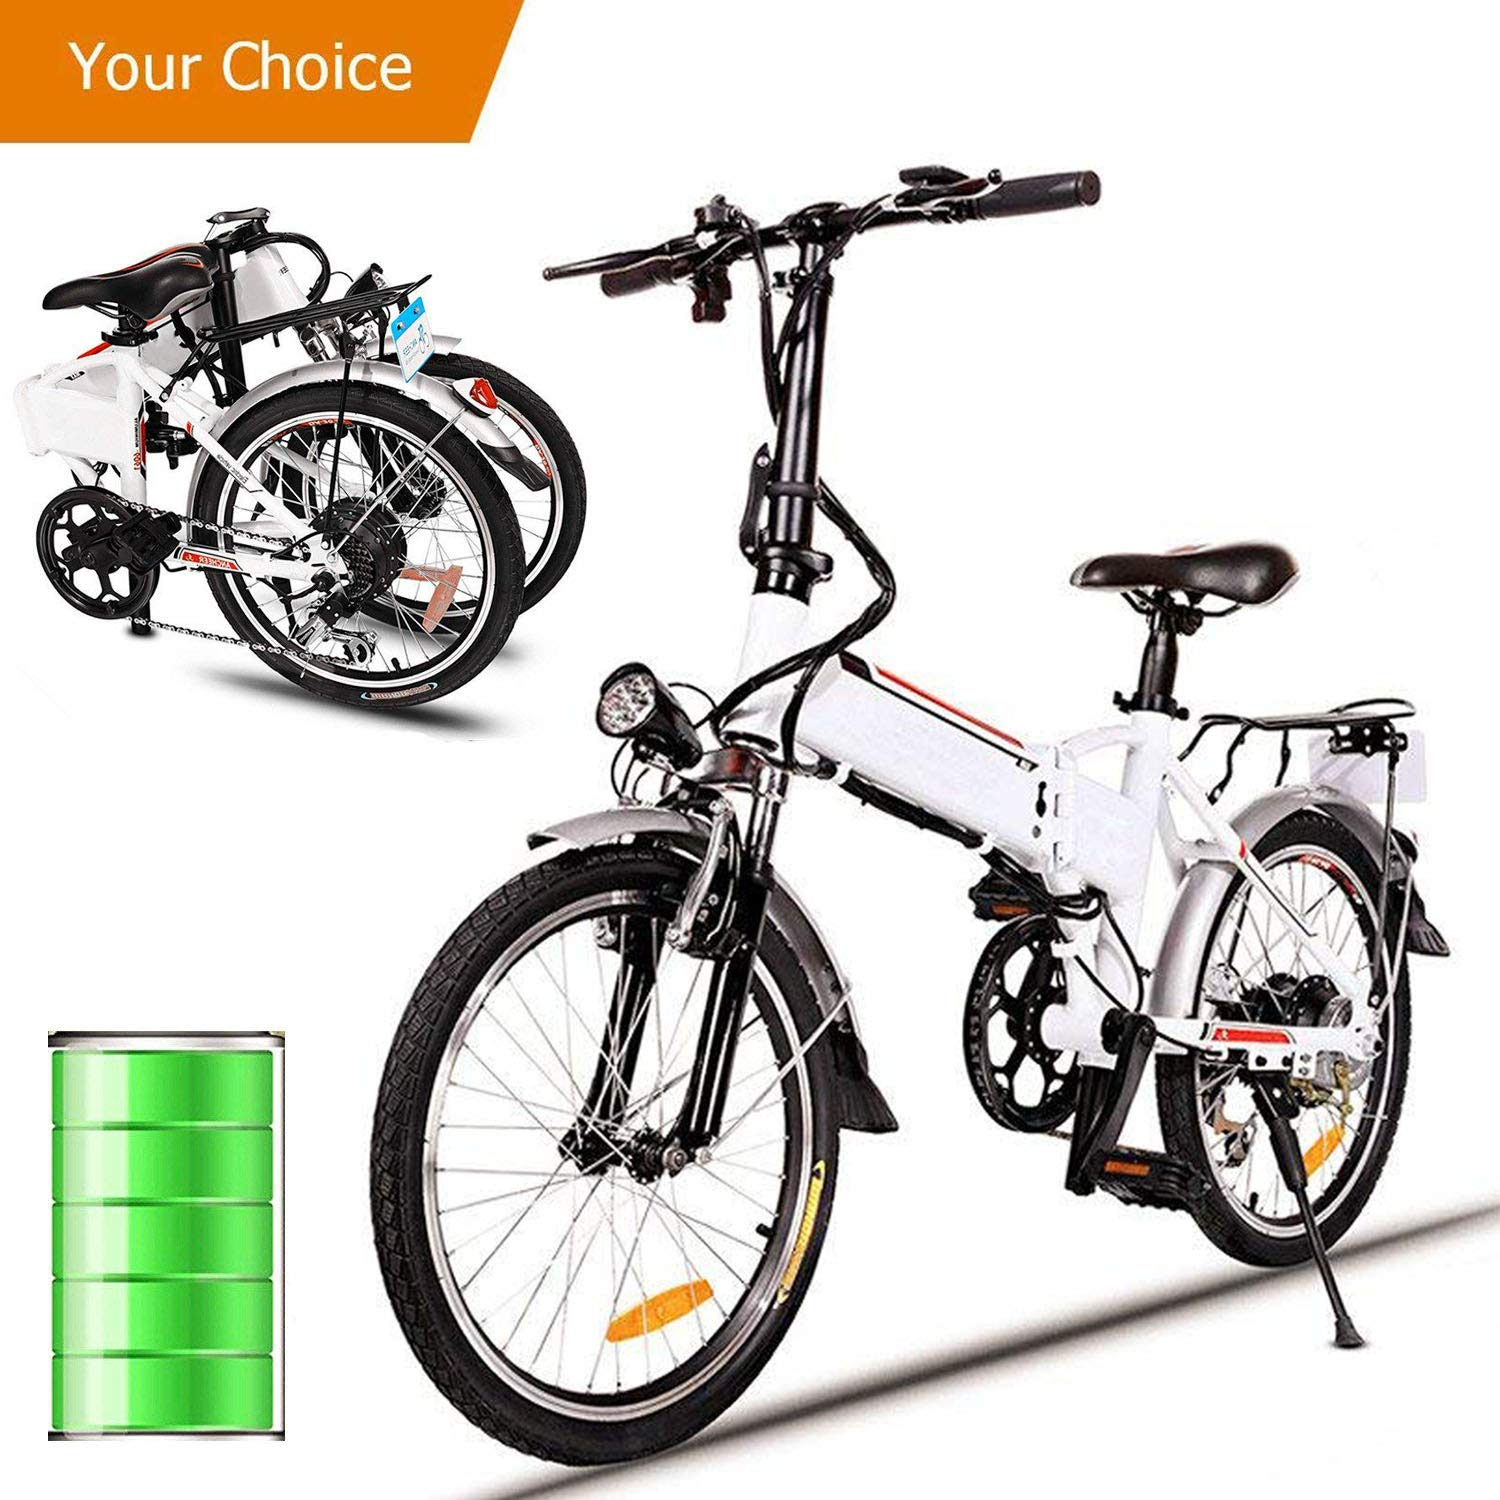 Miageek Folding Aluminum Electric Bike with 36V Removable Lithium-Ion Battery Lightweight E-Bike